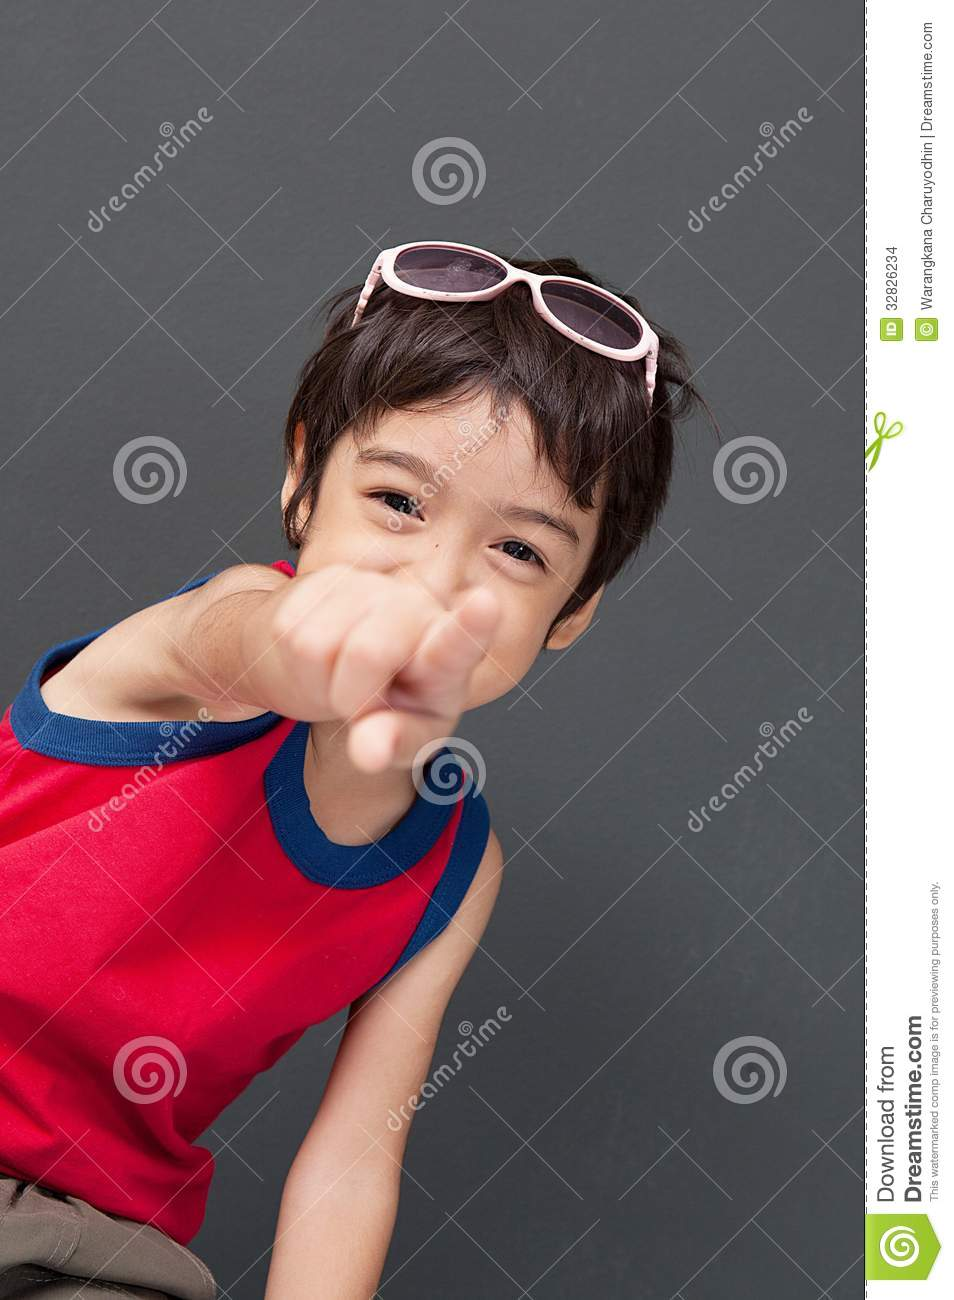 Cute Asian Boy Pointing Stock Images - Image: 32826234 Cute Baby Pointing Finger